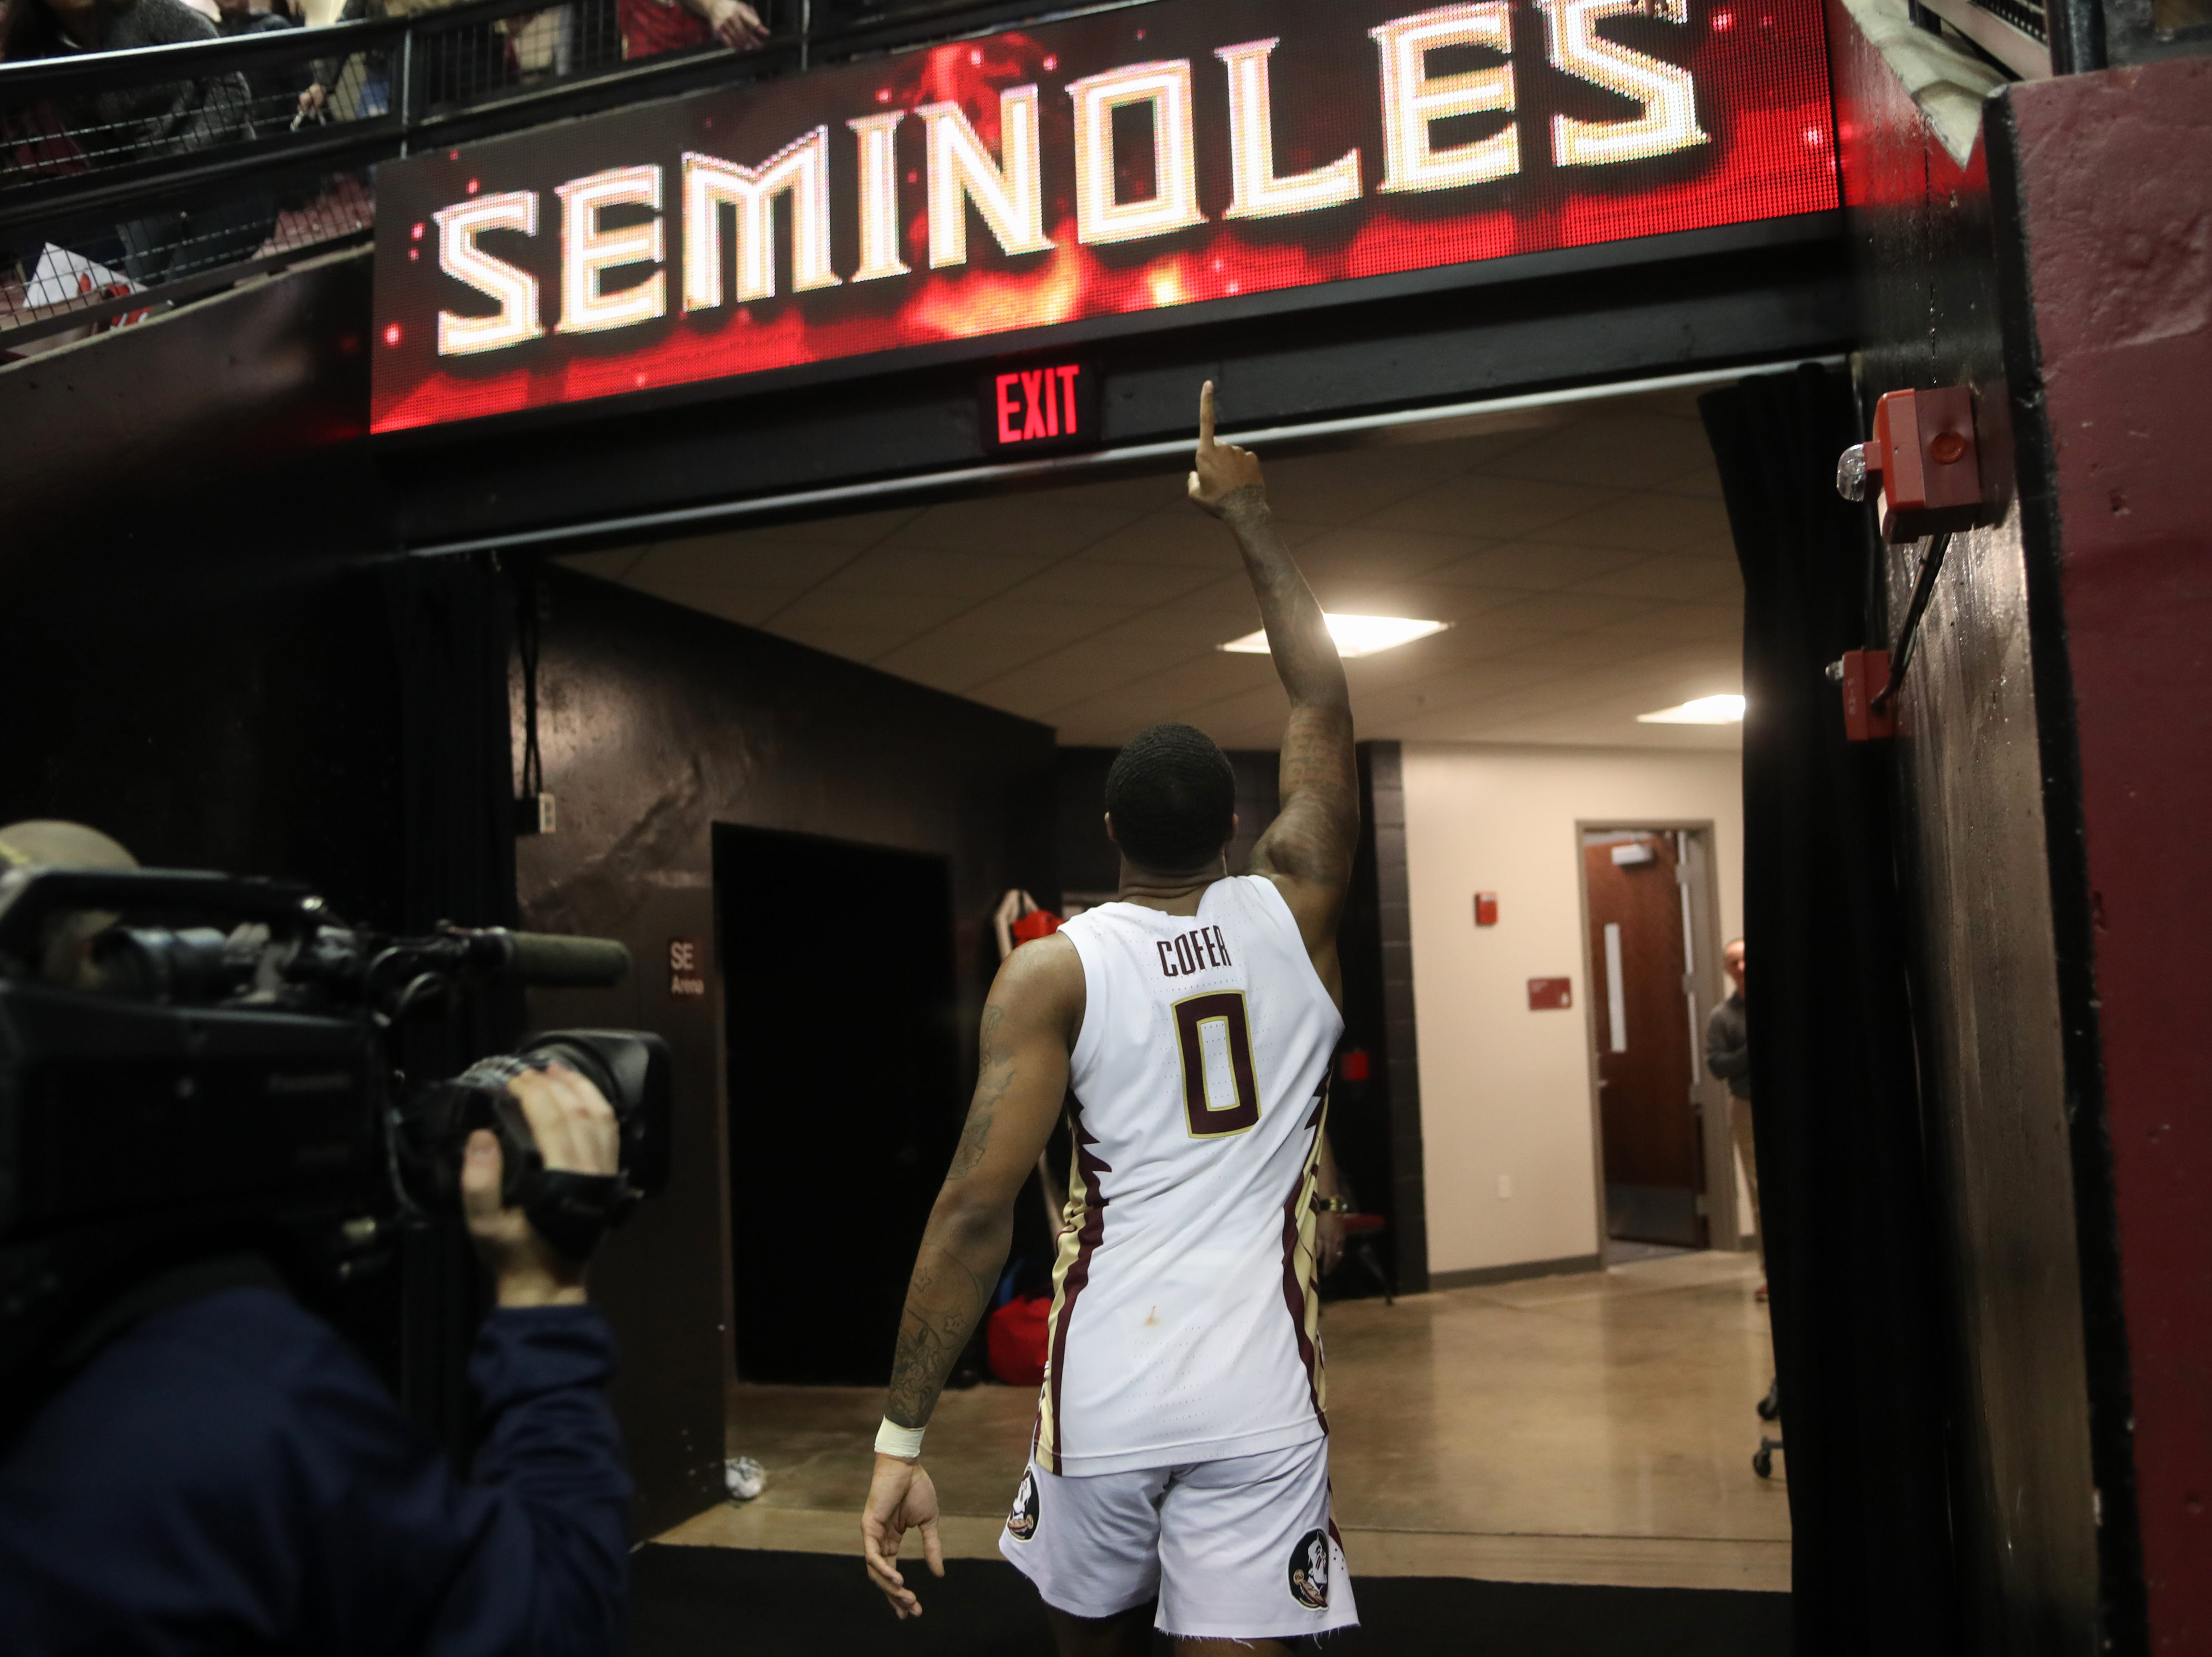 Florida State Seminoles forward Phil Cofer (0) gives one last goodbye to the fans before returning to the locker room after the team defeated Virginia Tech at the Donald L. Tucker Civic Center Tuesday, March 5, 2019.